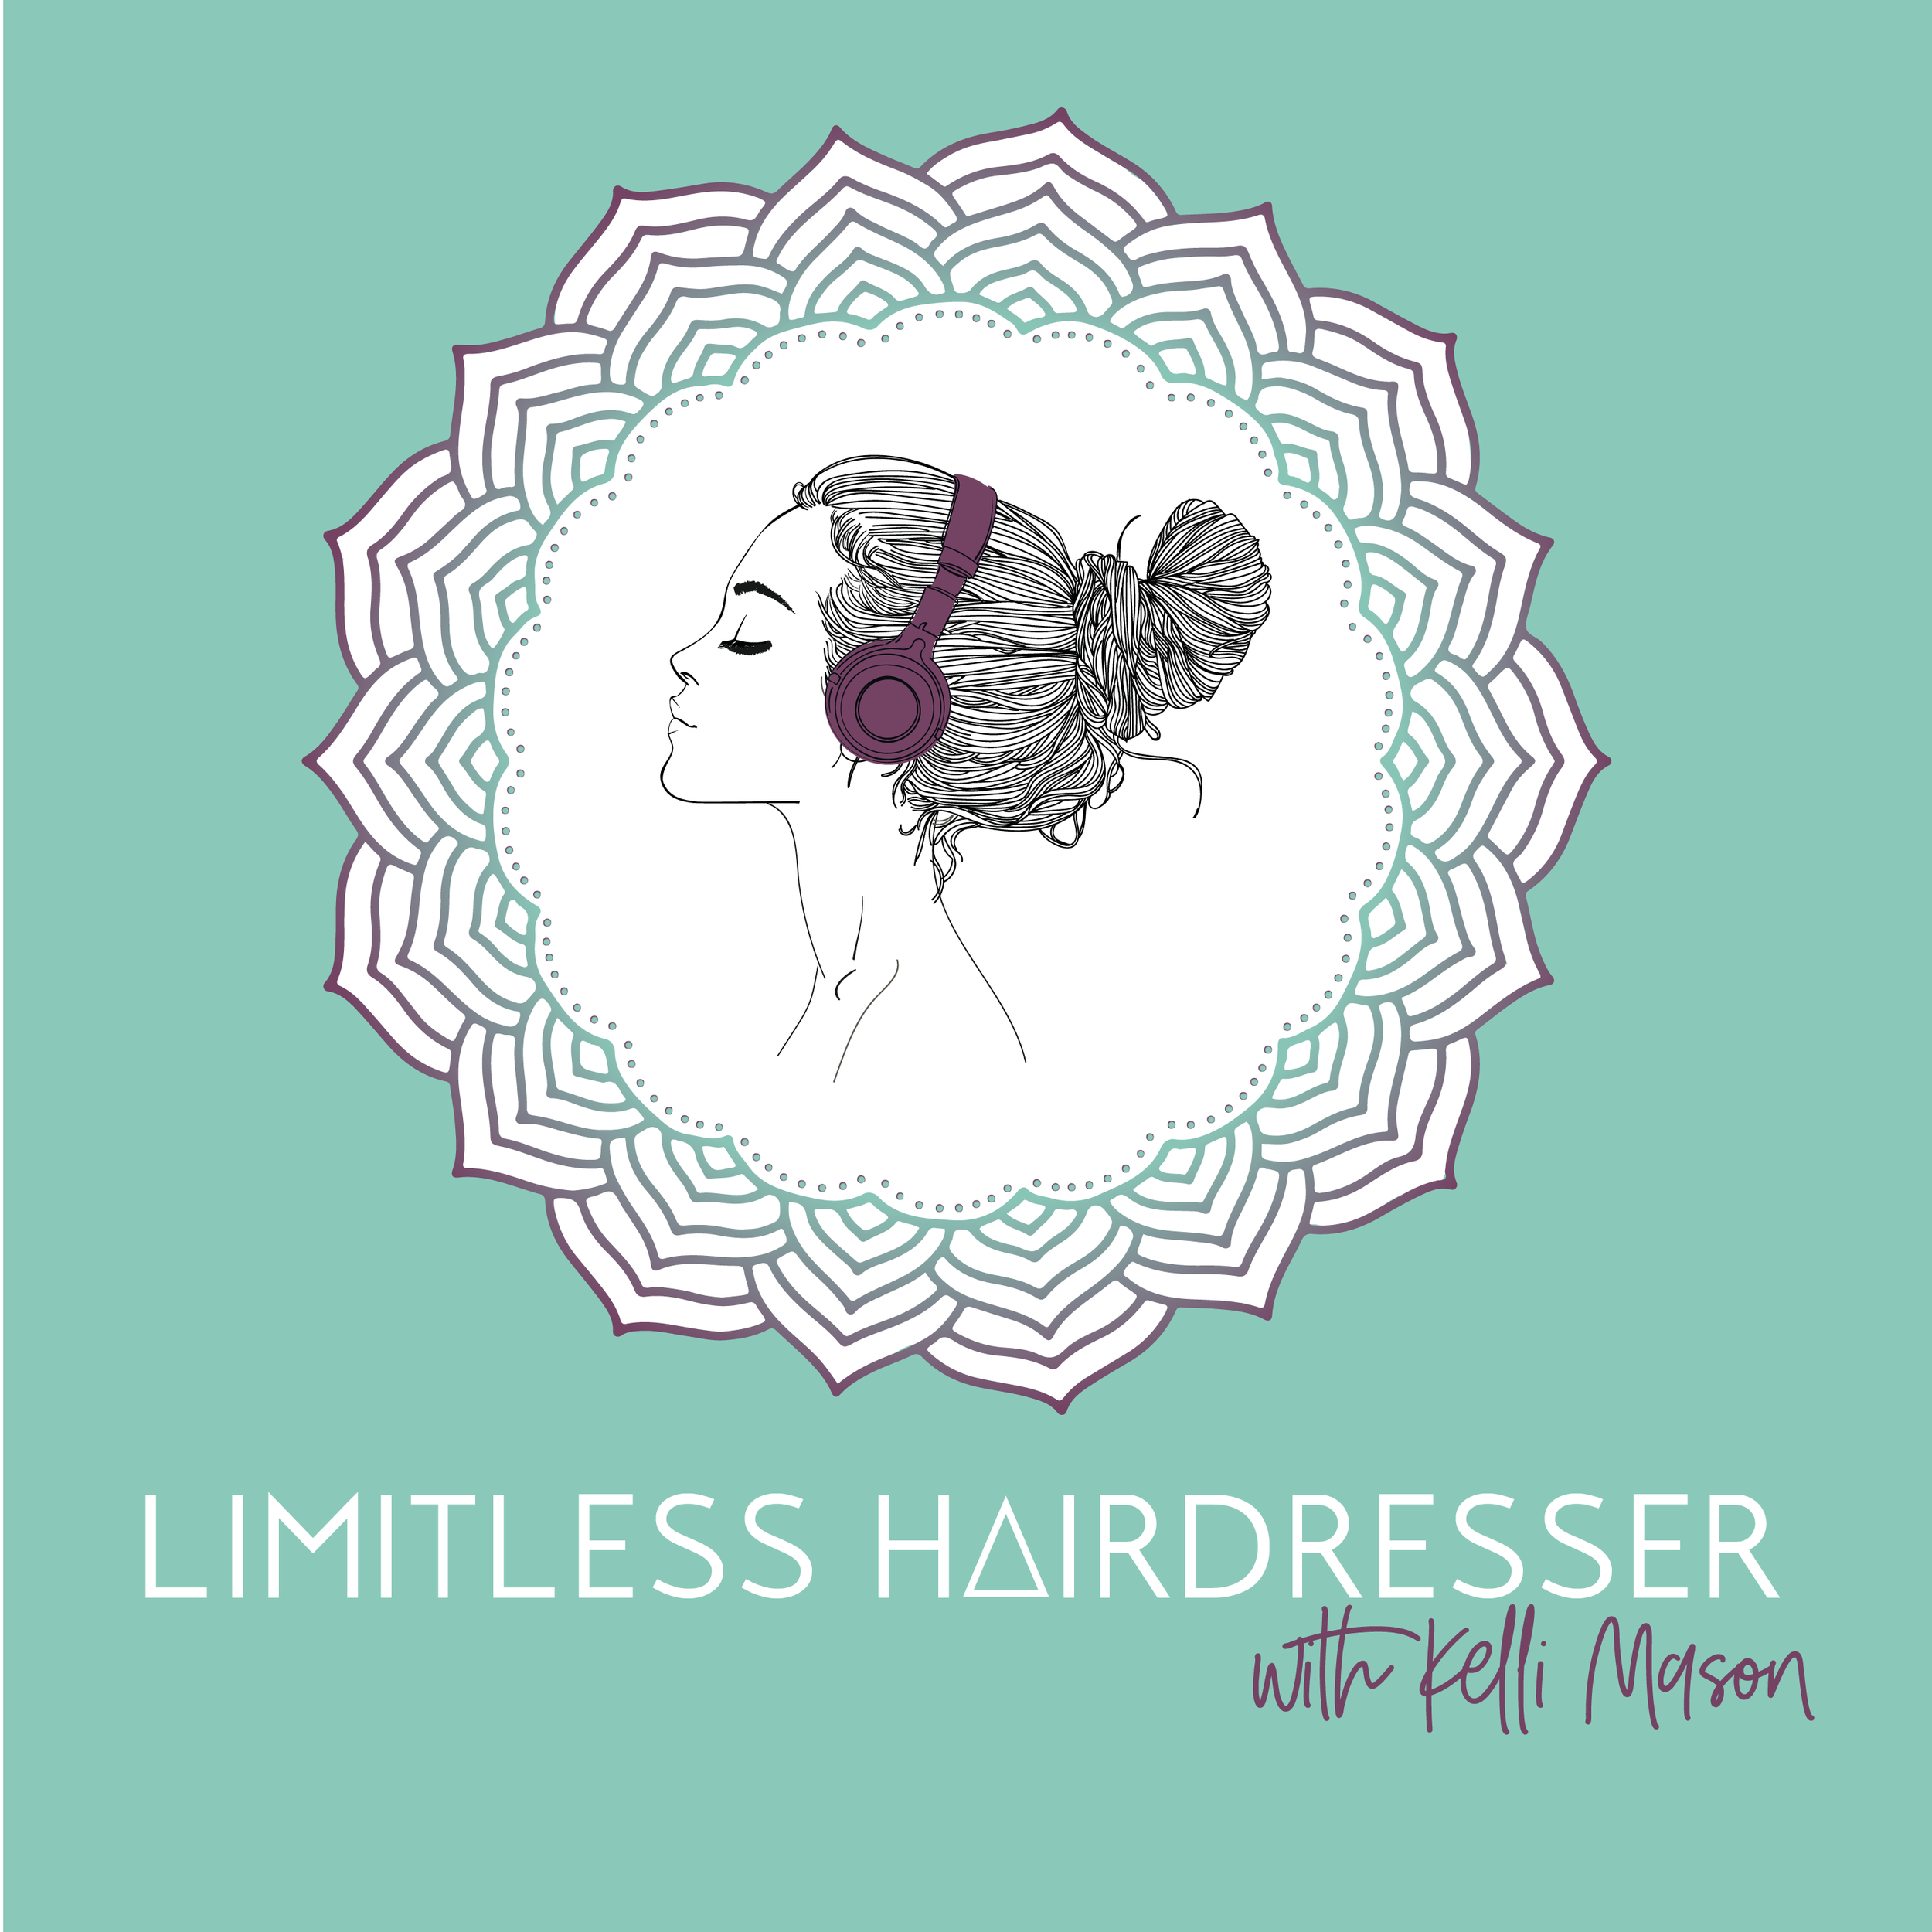 The Limitless Hairdresser podcast was born!